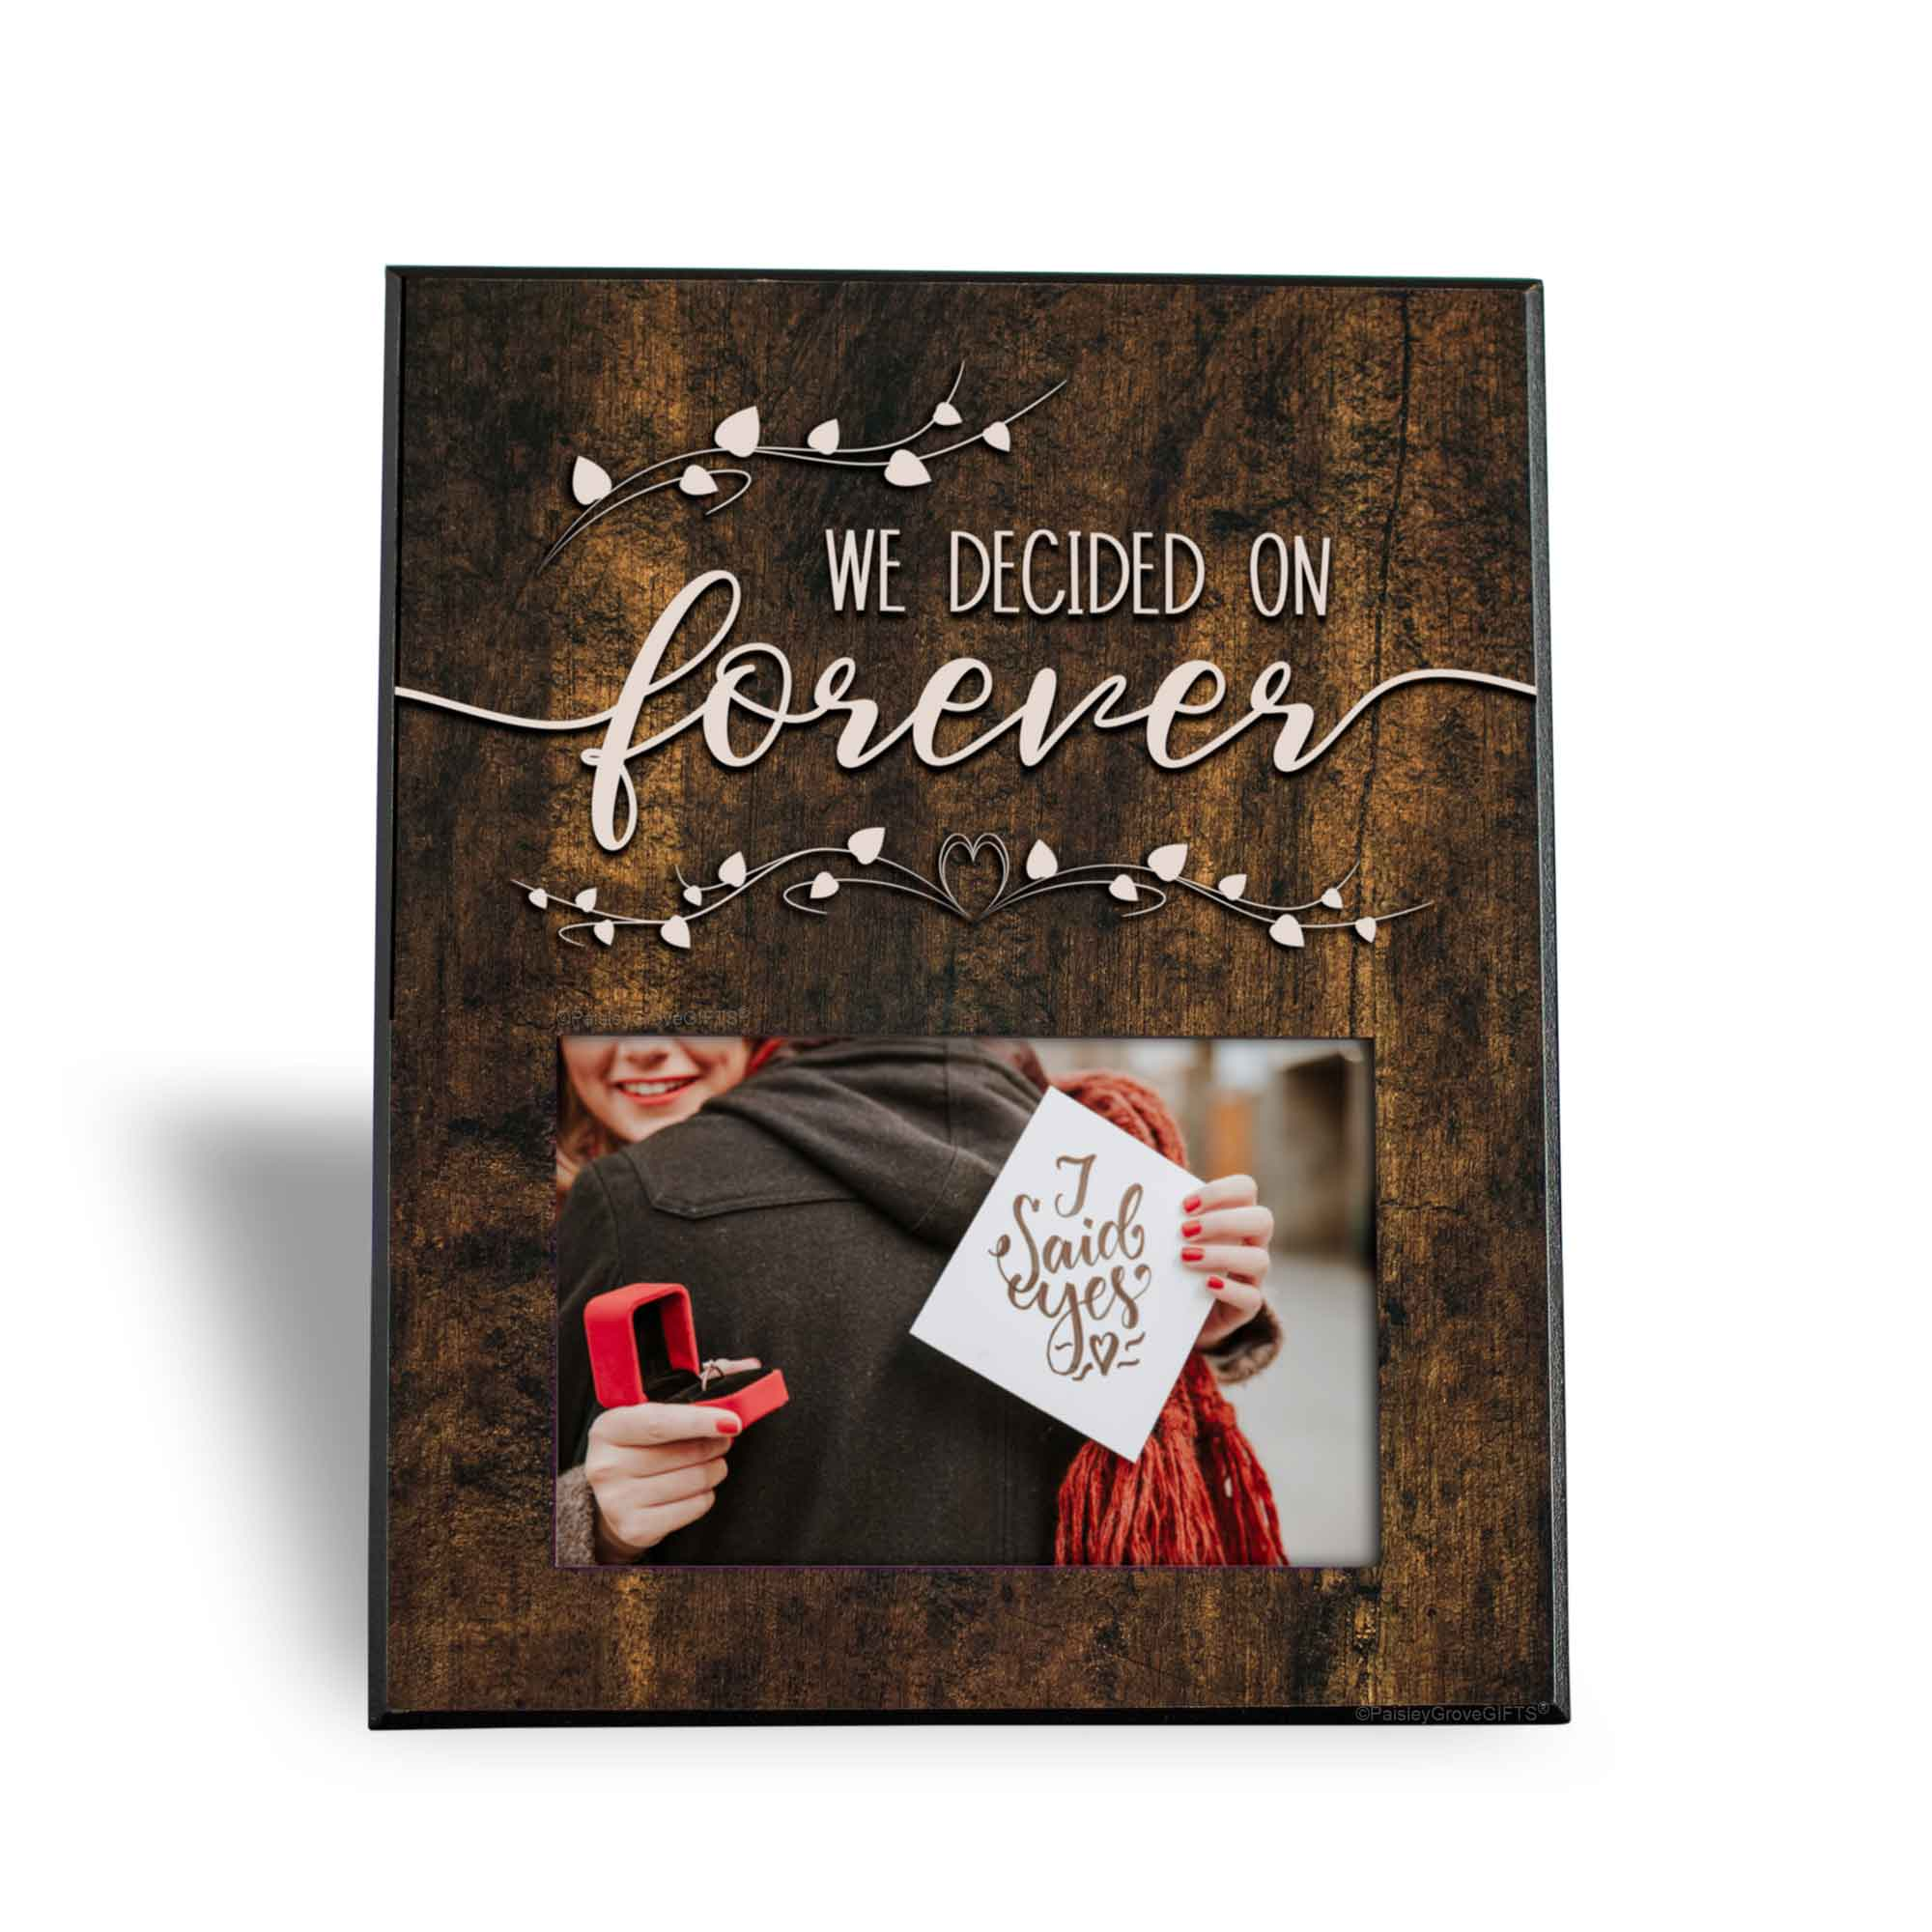 CopyrightPaisleyGroveGIFTS S240b We decided on forever engagement gifts for soon to be bride keepsake frame